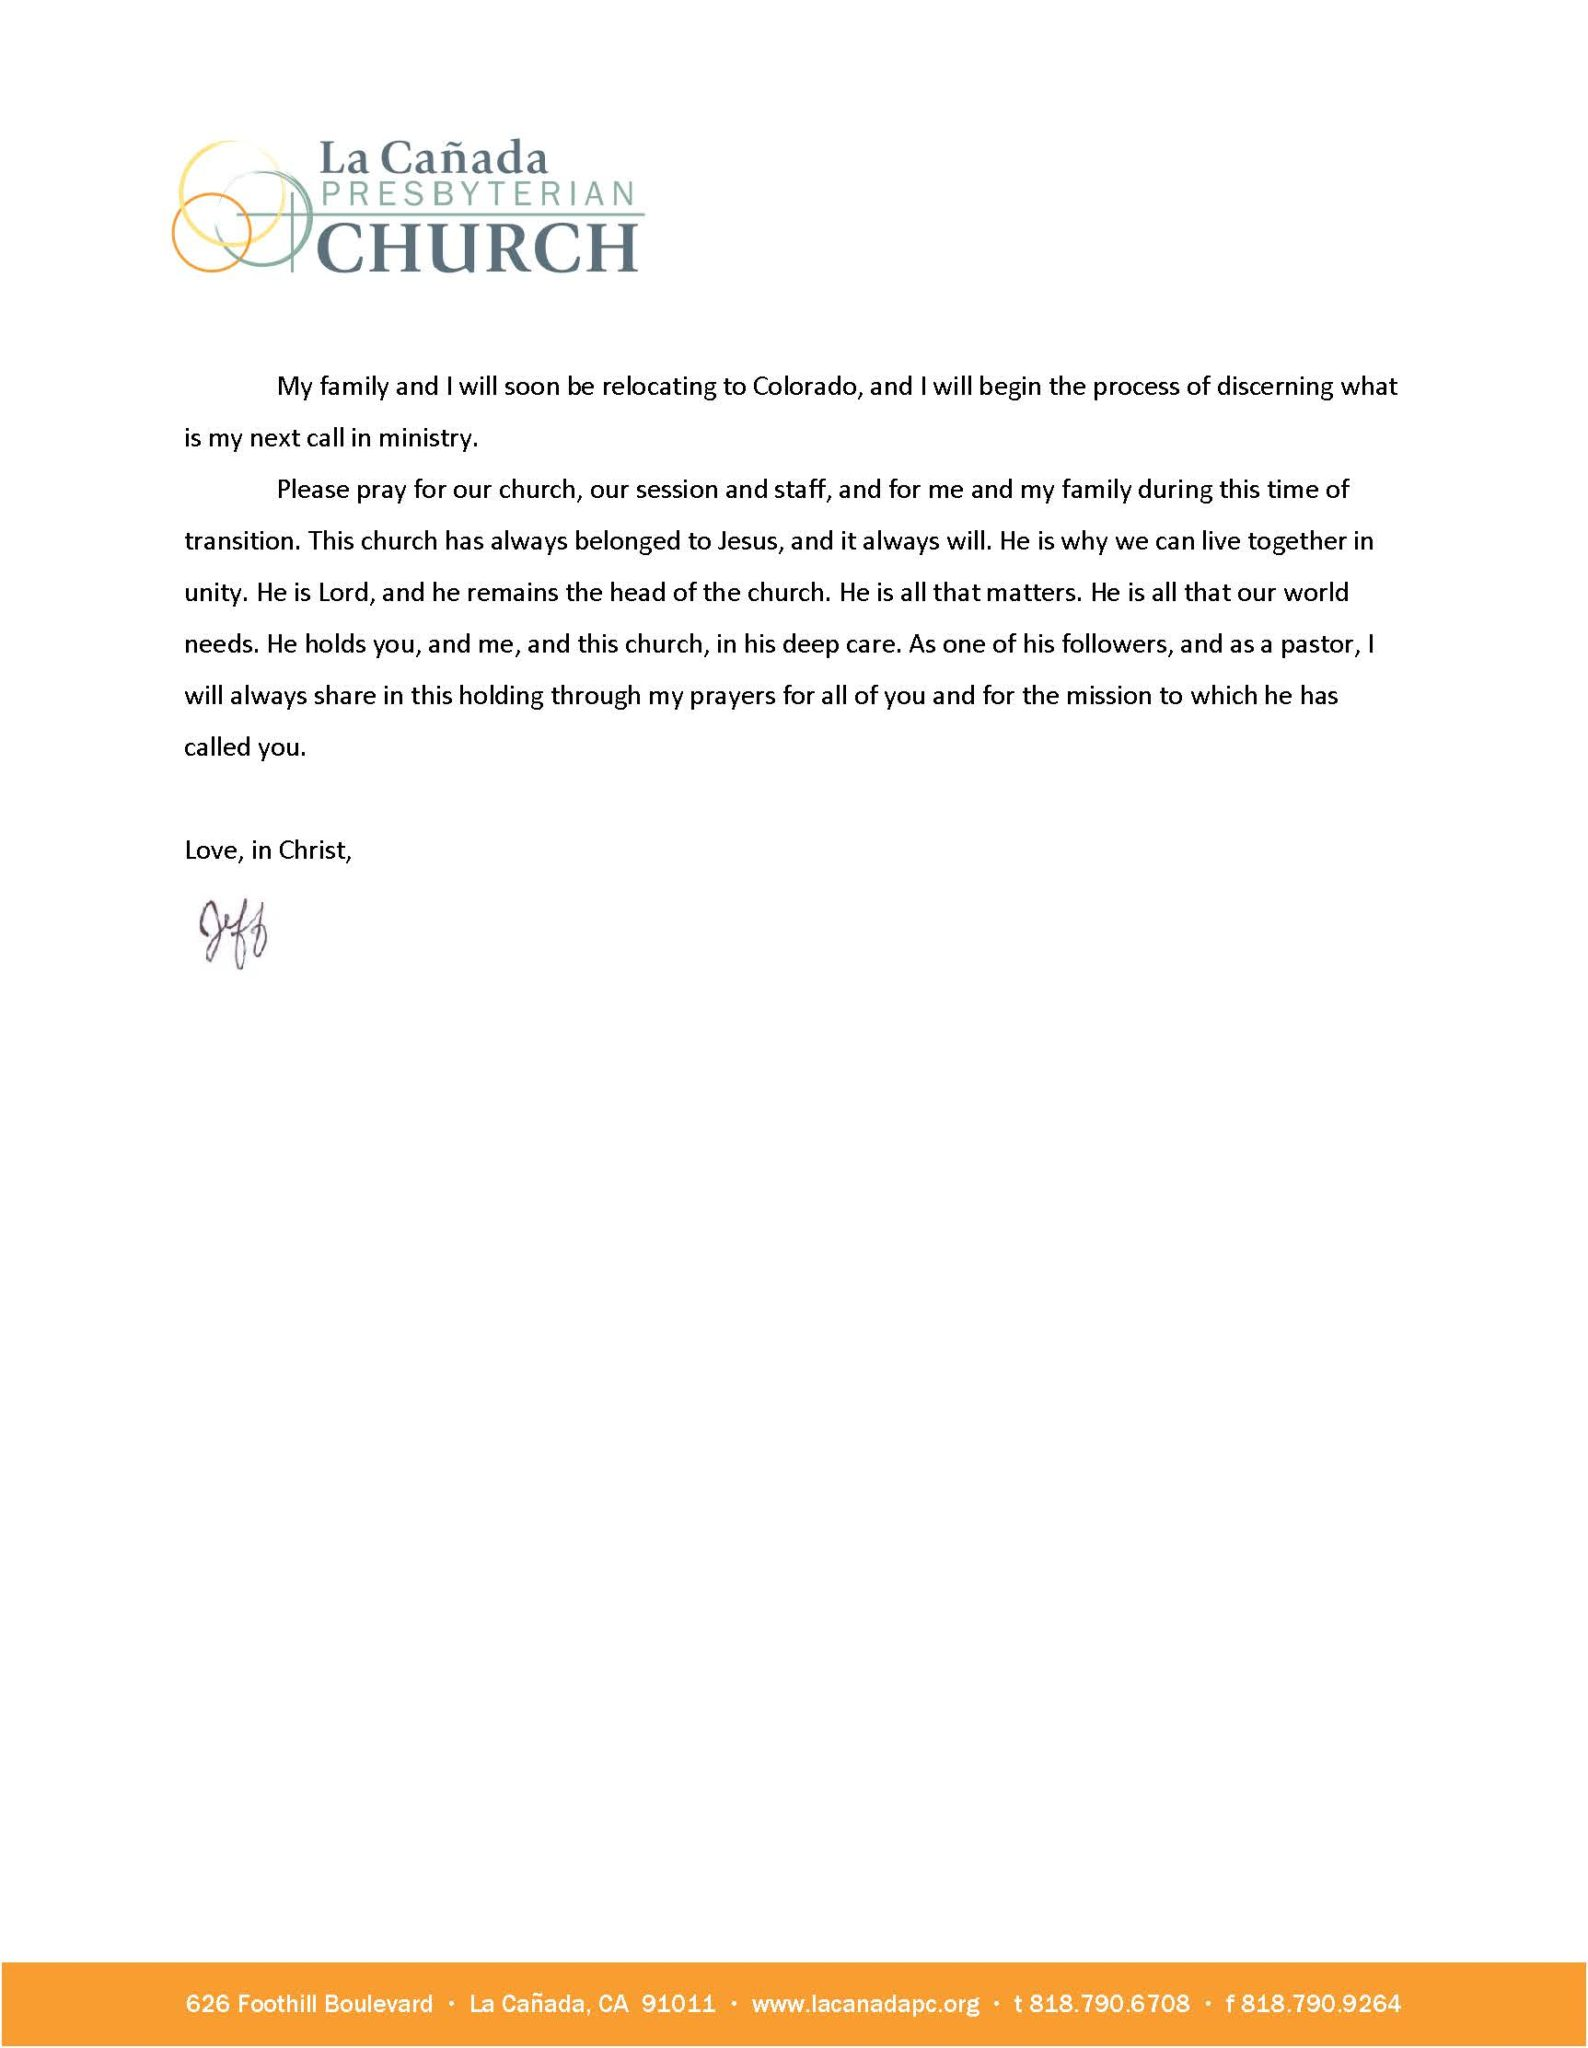 Jeff letter to congregation on letterhead_Page_2